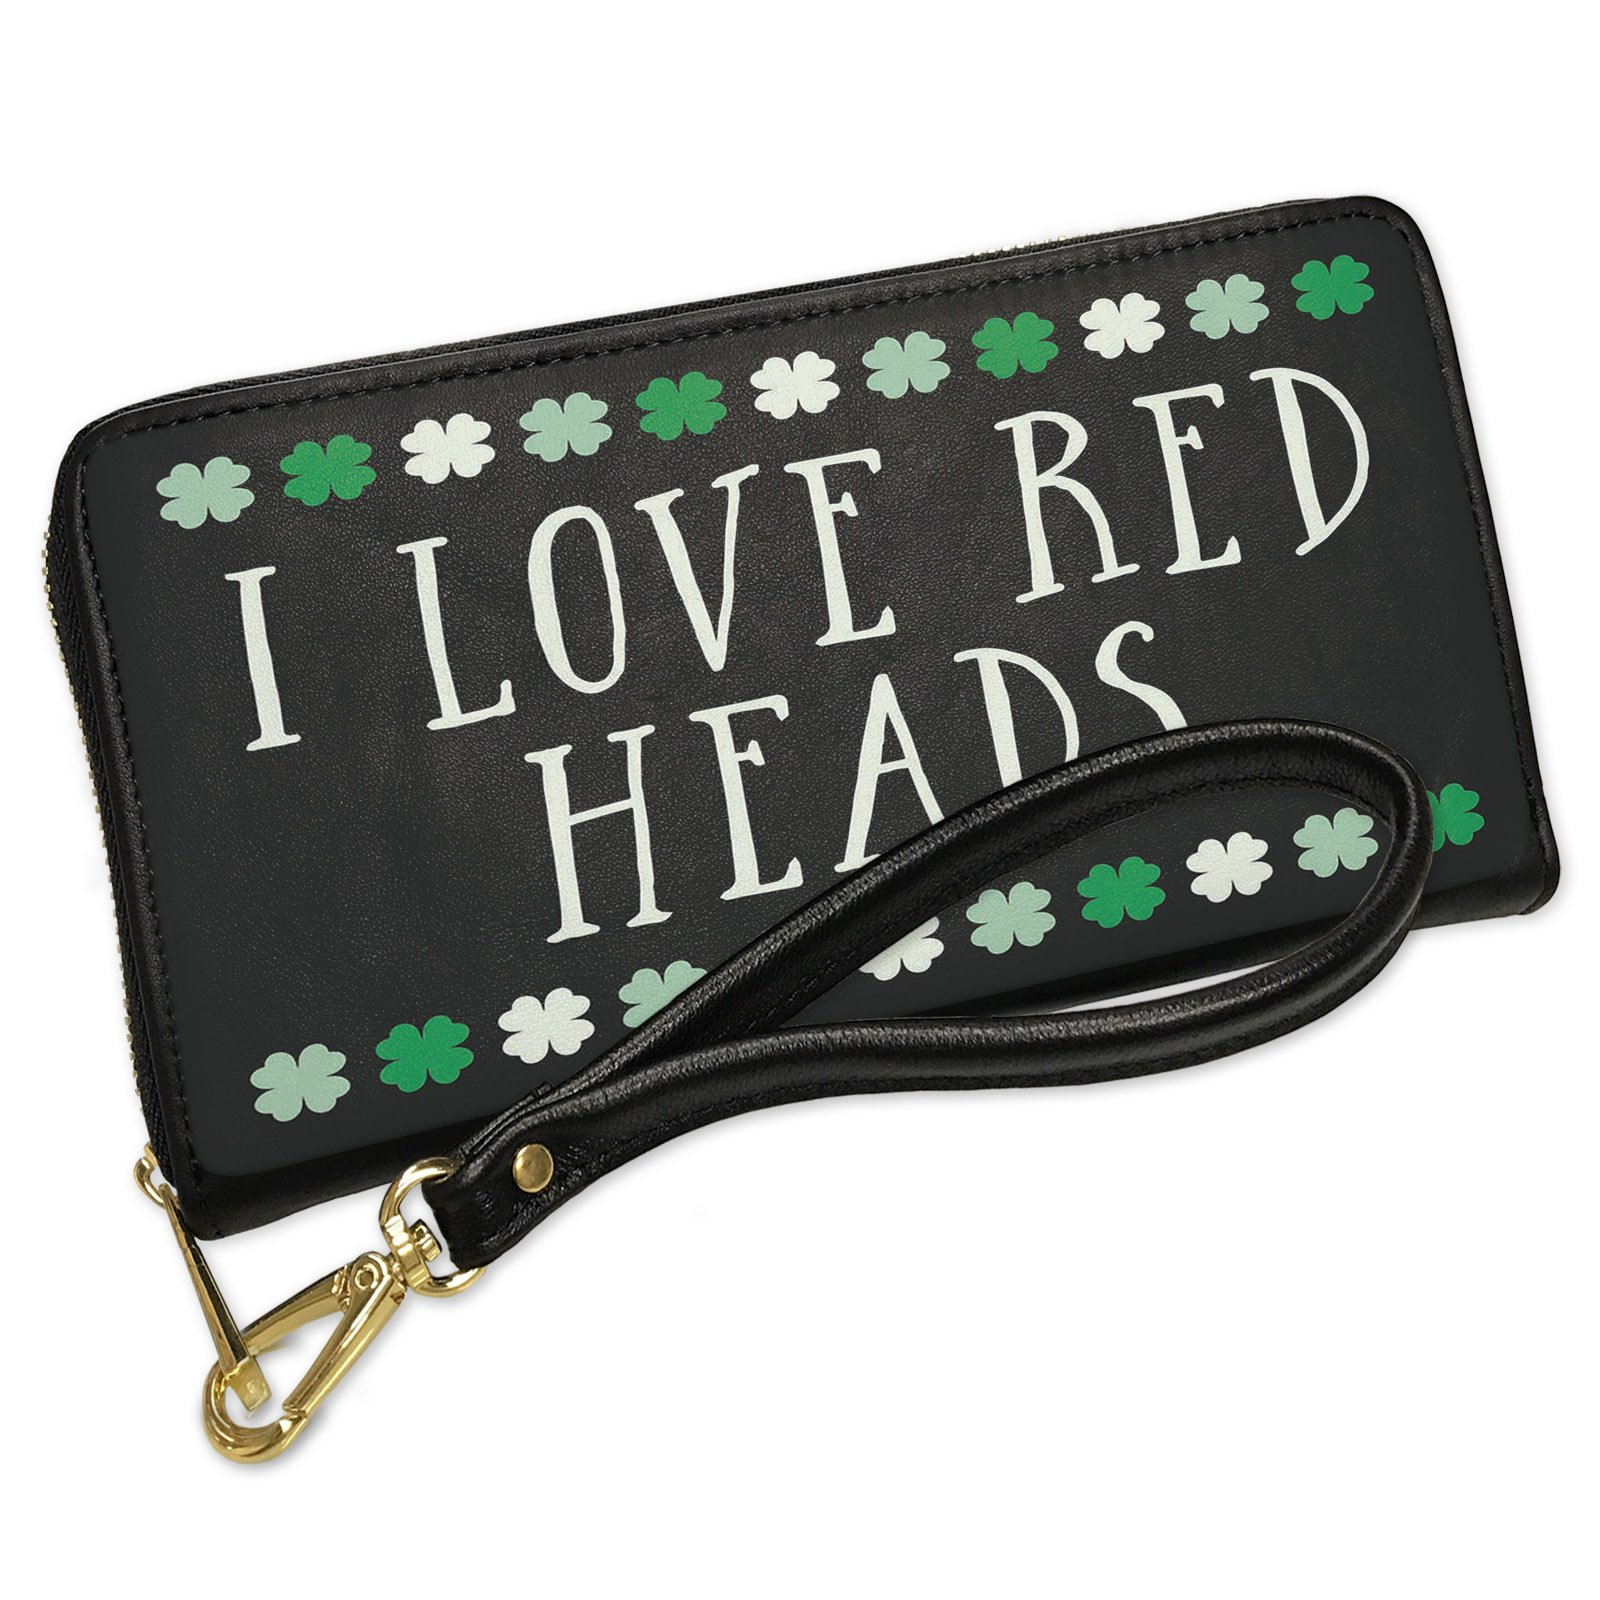 Wallet Clutch I Love Red Heads St. Patrick's Day Cute Shamrocks with Removable Wristlet Strap Neonblond